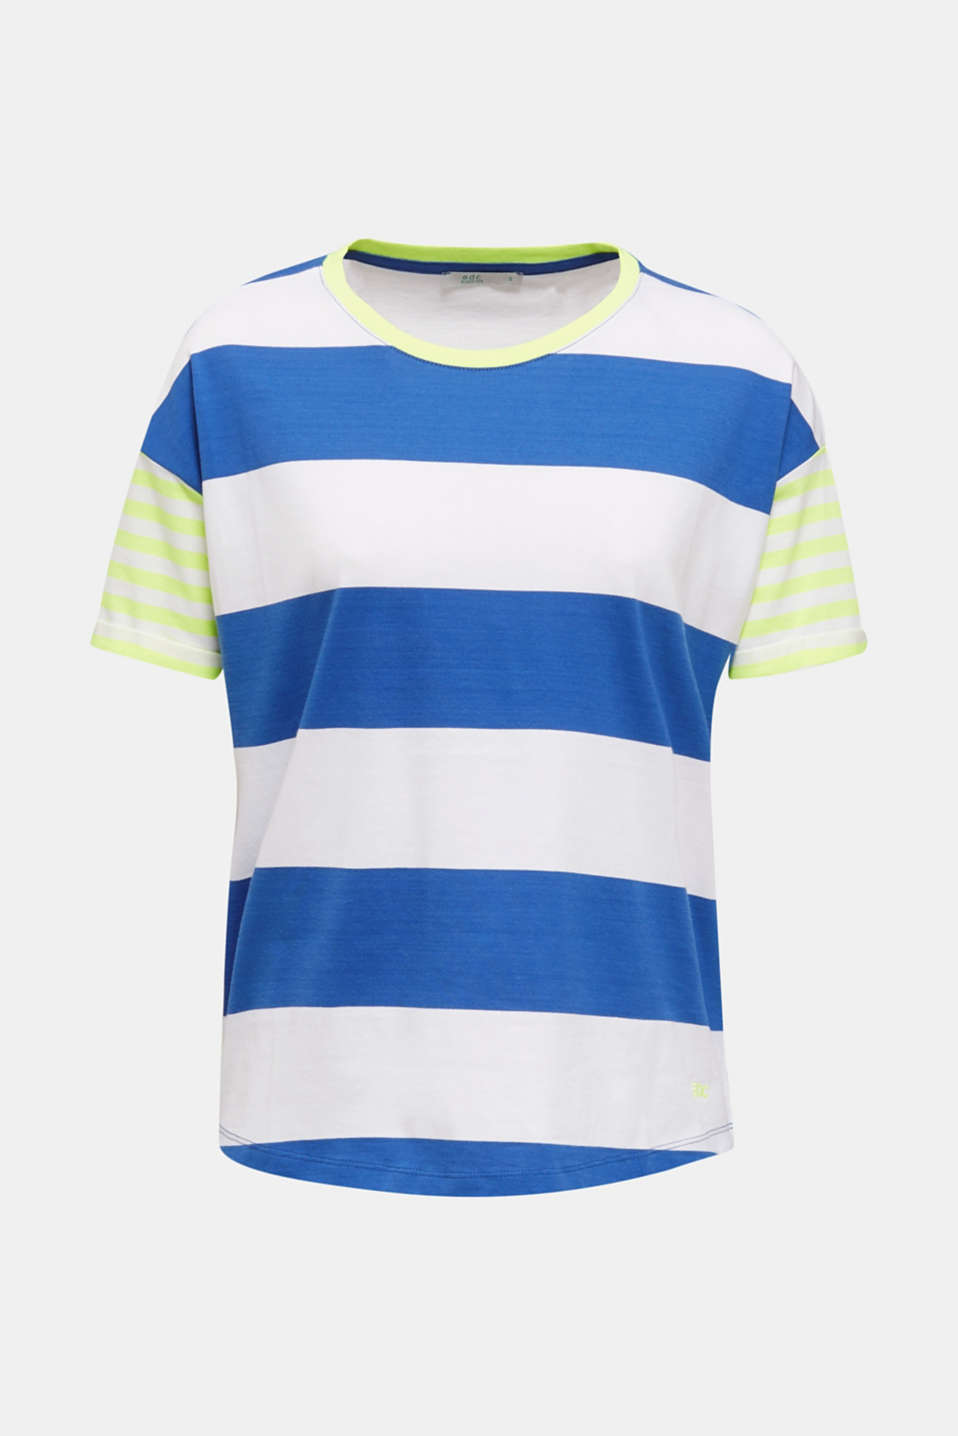 NEON T-shirt with block stripes, 100% cotton, BRIGHT BLUE, detail image number 6